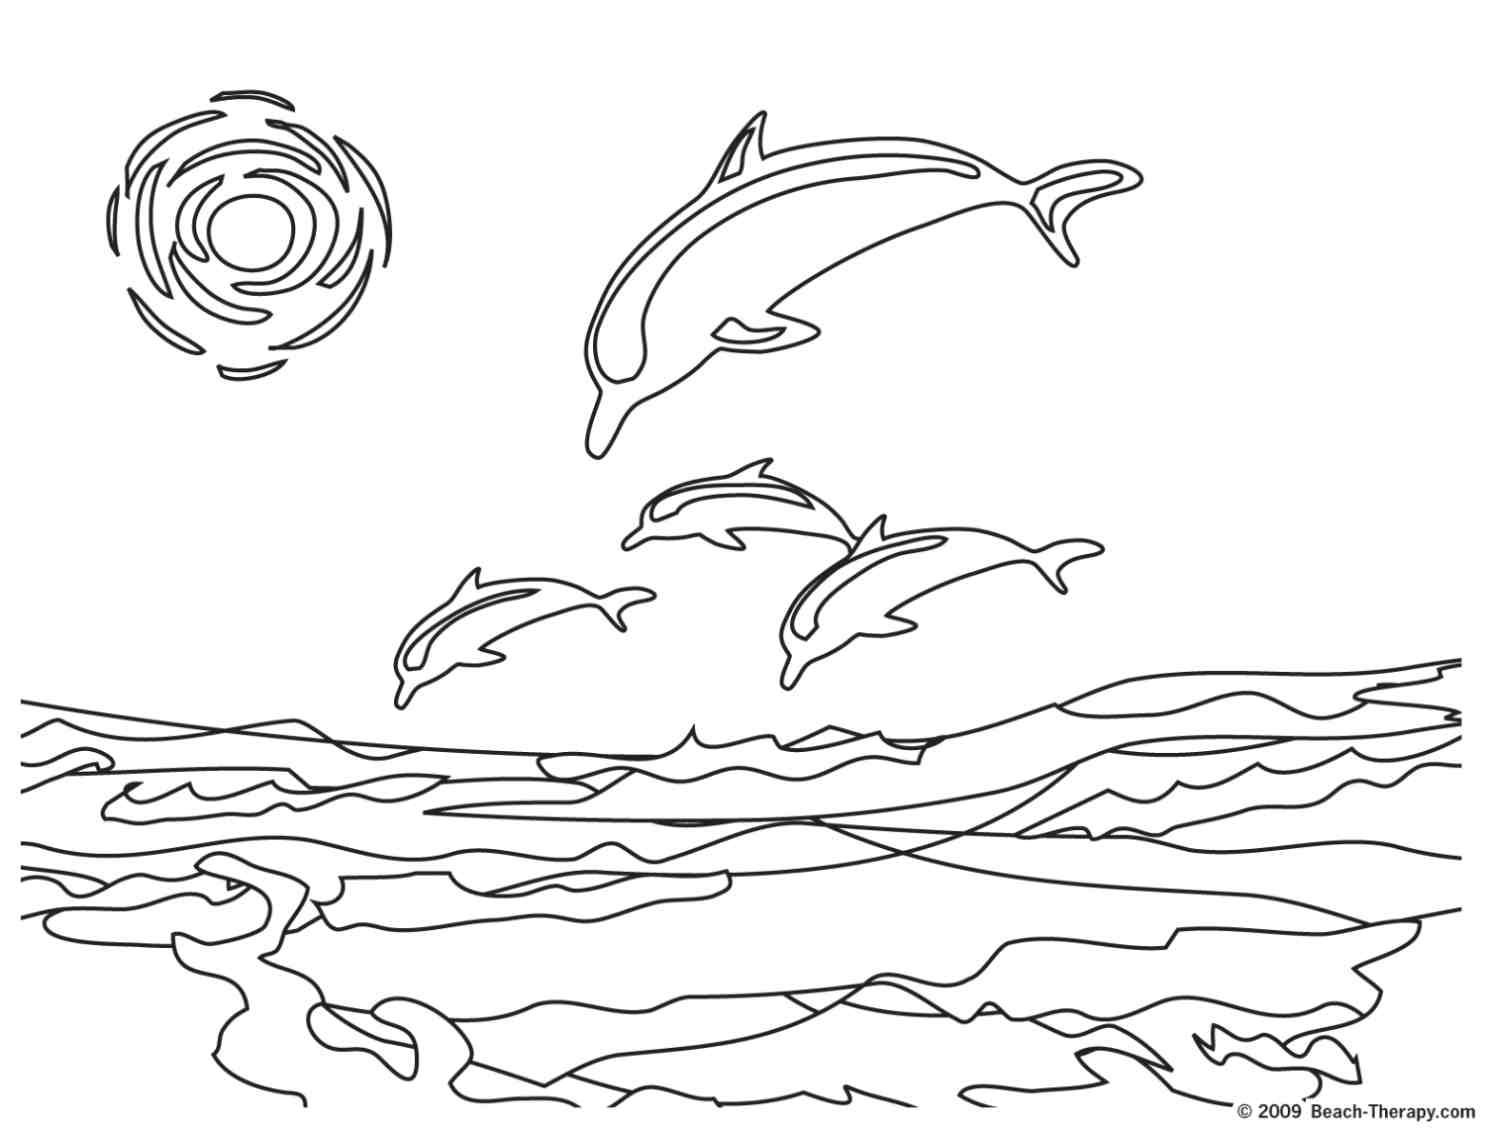 Underwater Ocean Coloring Book Fish and Sea Life! Super